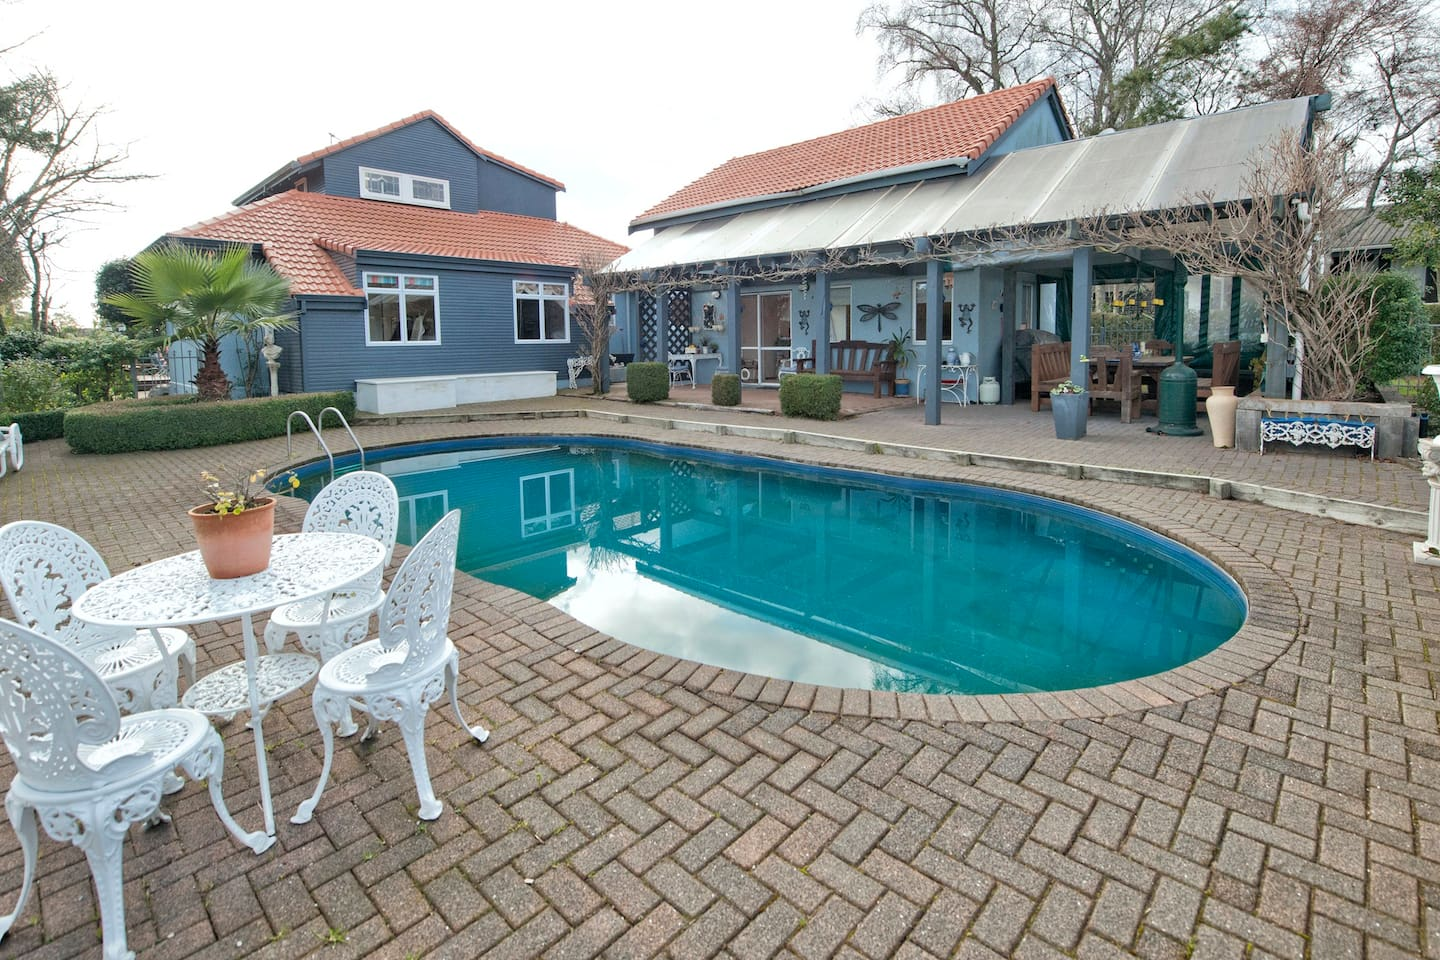 Your accommodation next to the Swimming pool area.